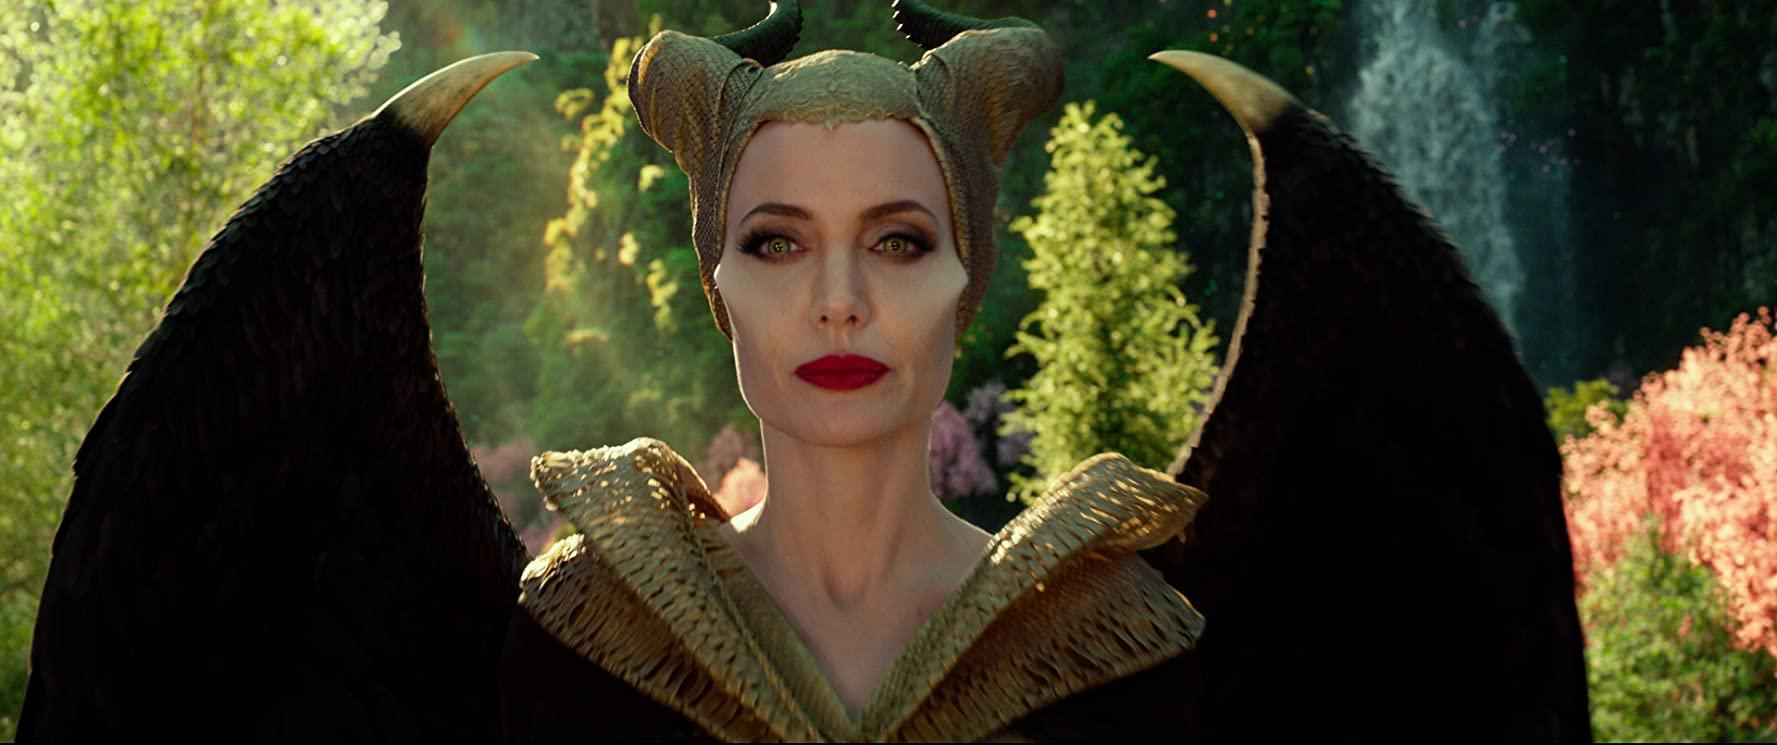 مشاهدة فيلم Maleficent: Mistress of Evil(2019) مترجم HD اون لاين